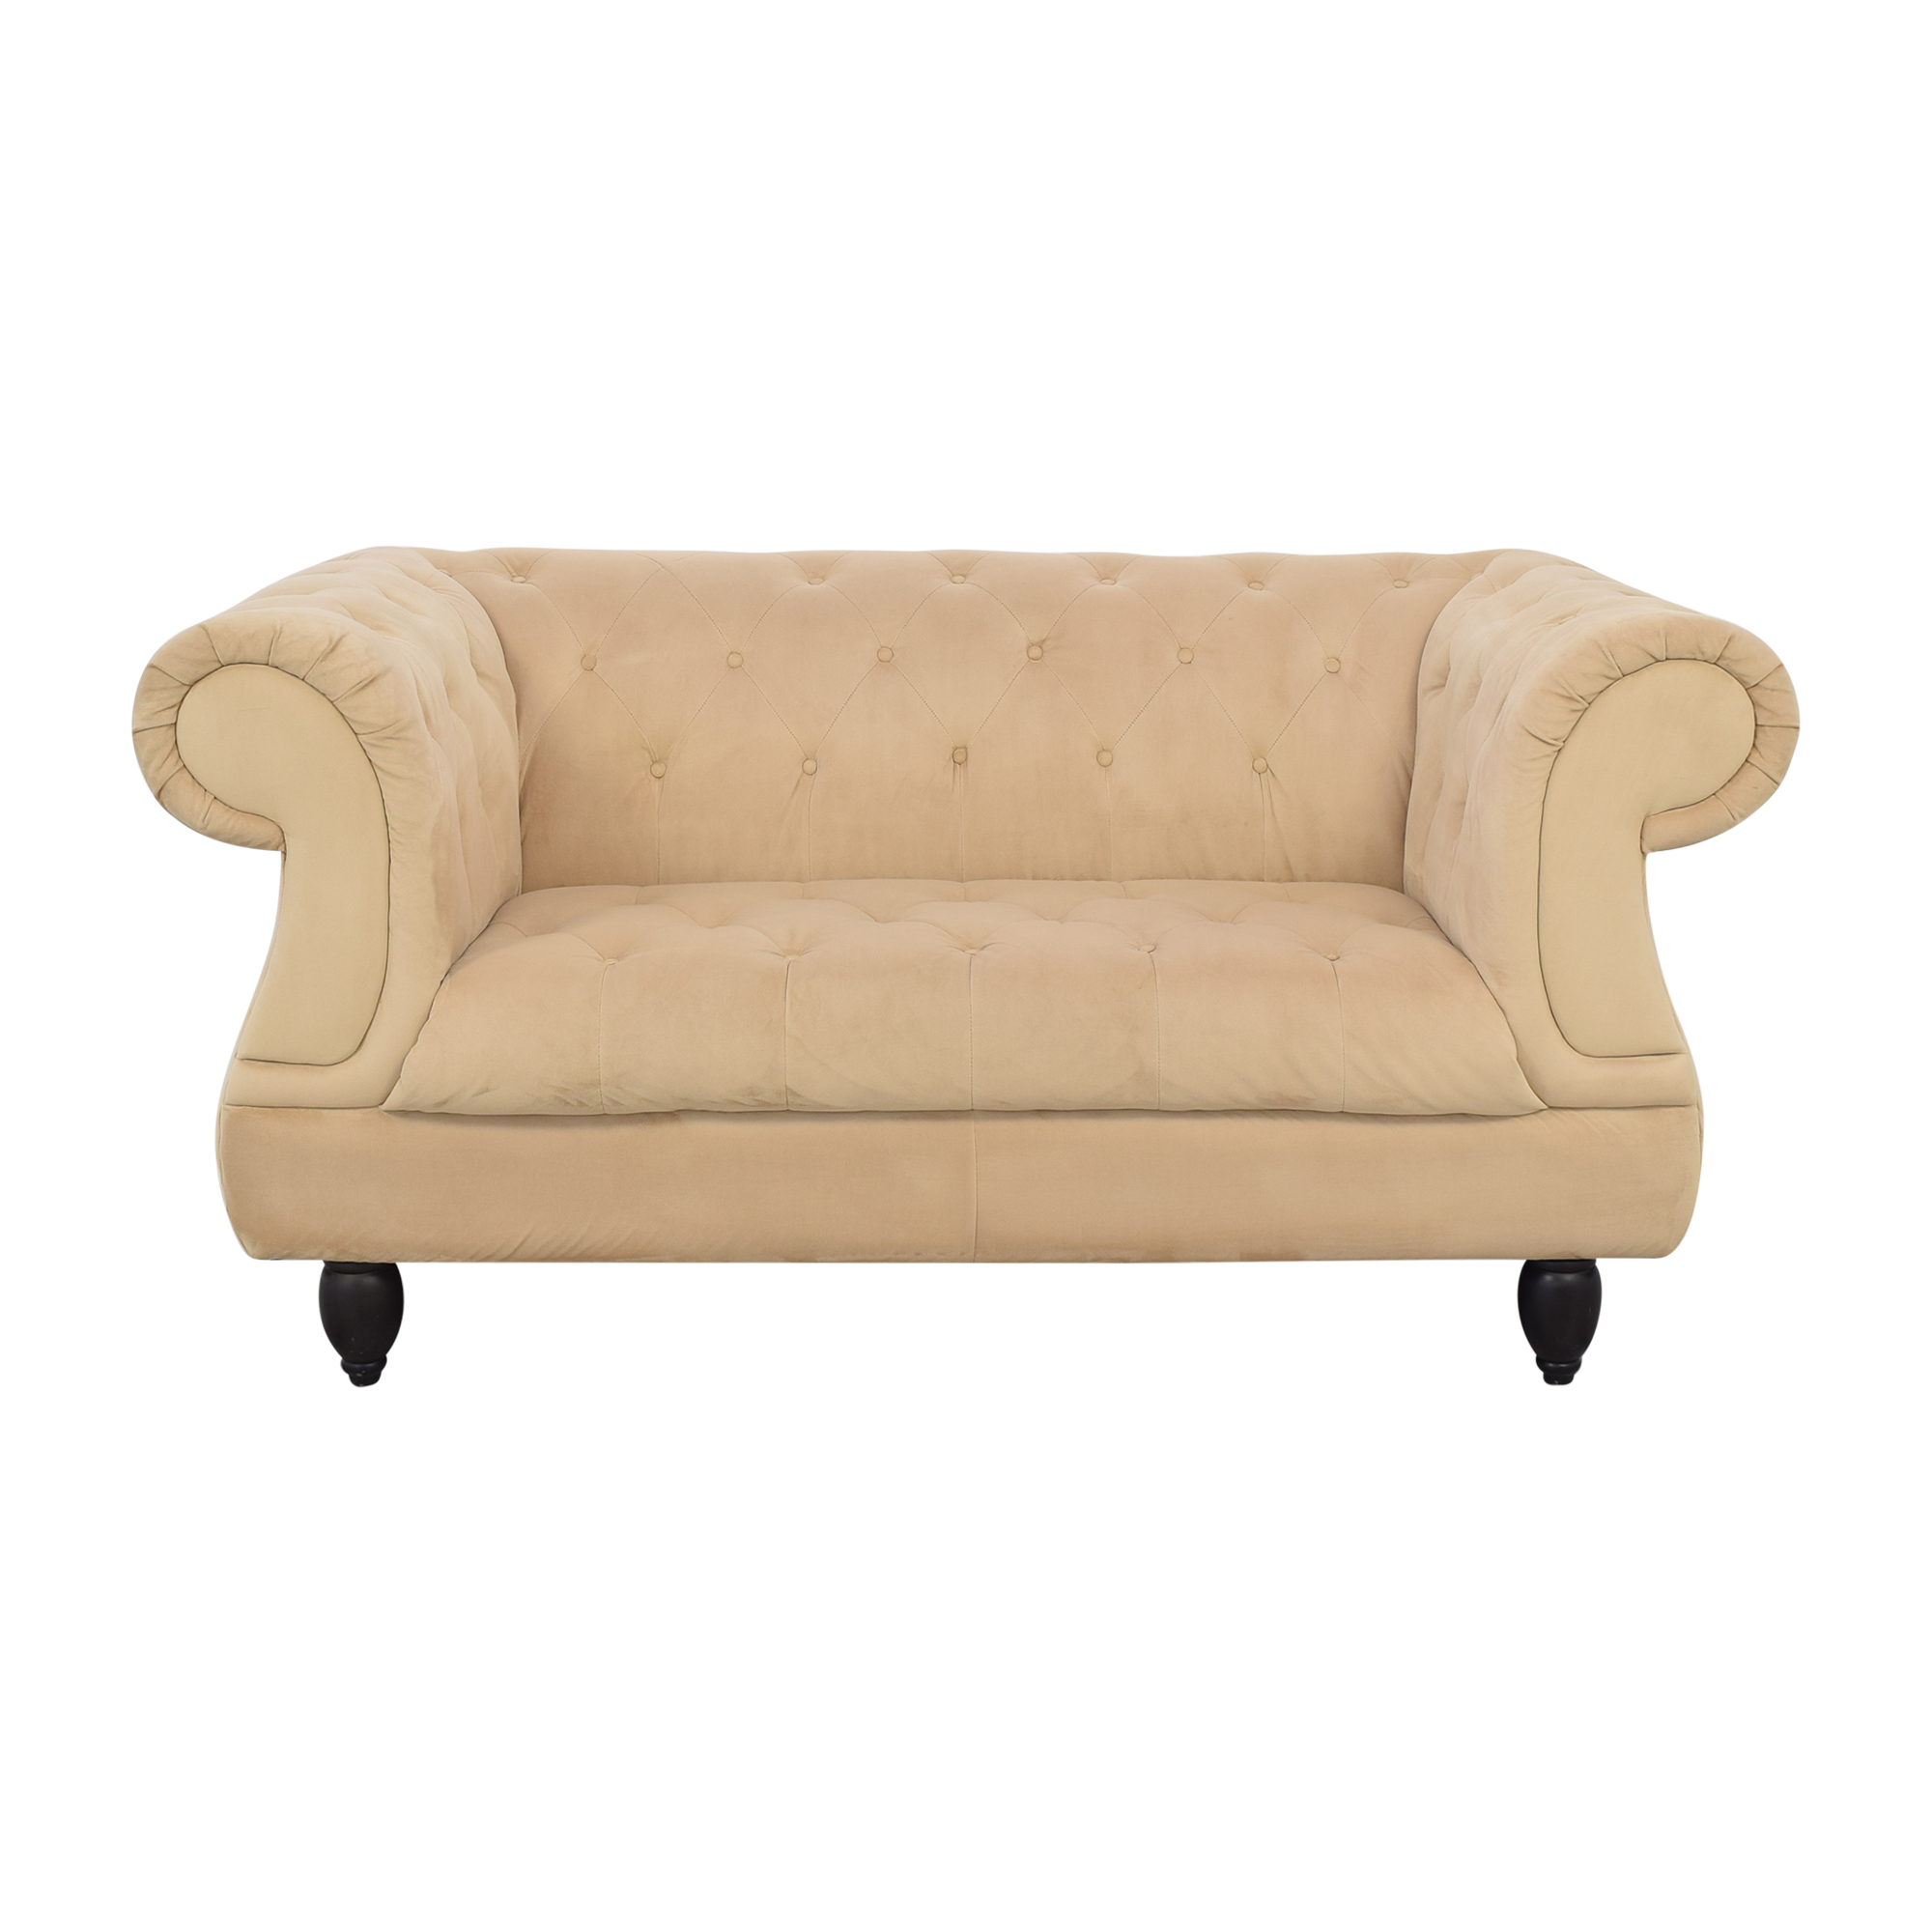 buy Raymour & Flanigan Chesterfield Sofa Raymour & Flanigan Sofas